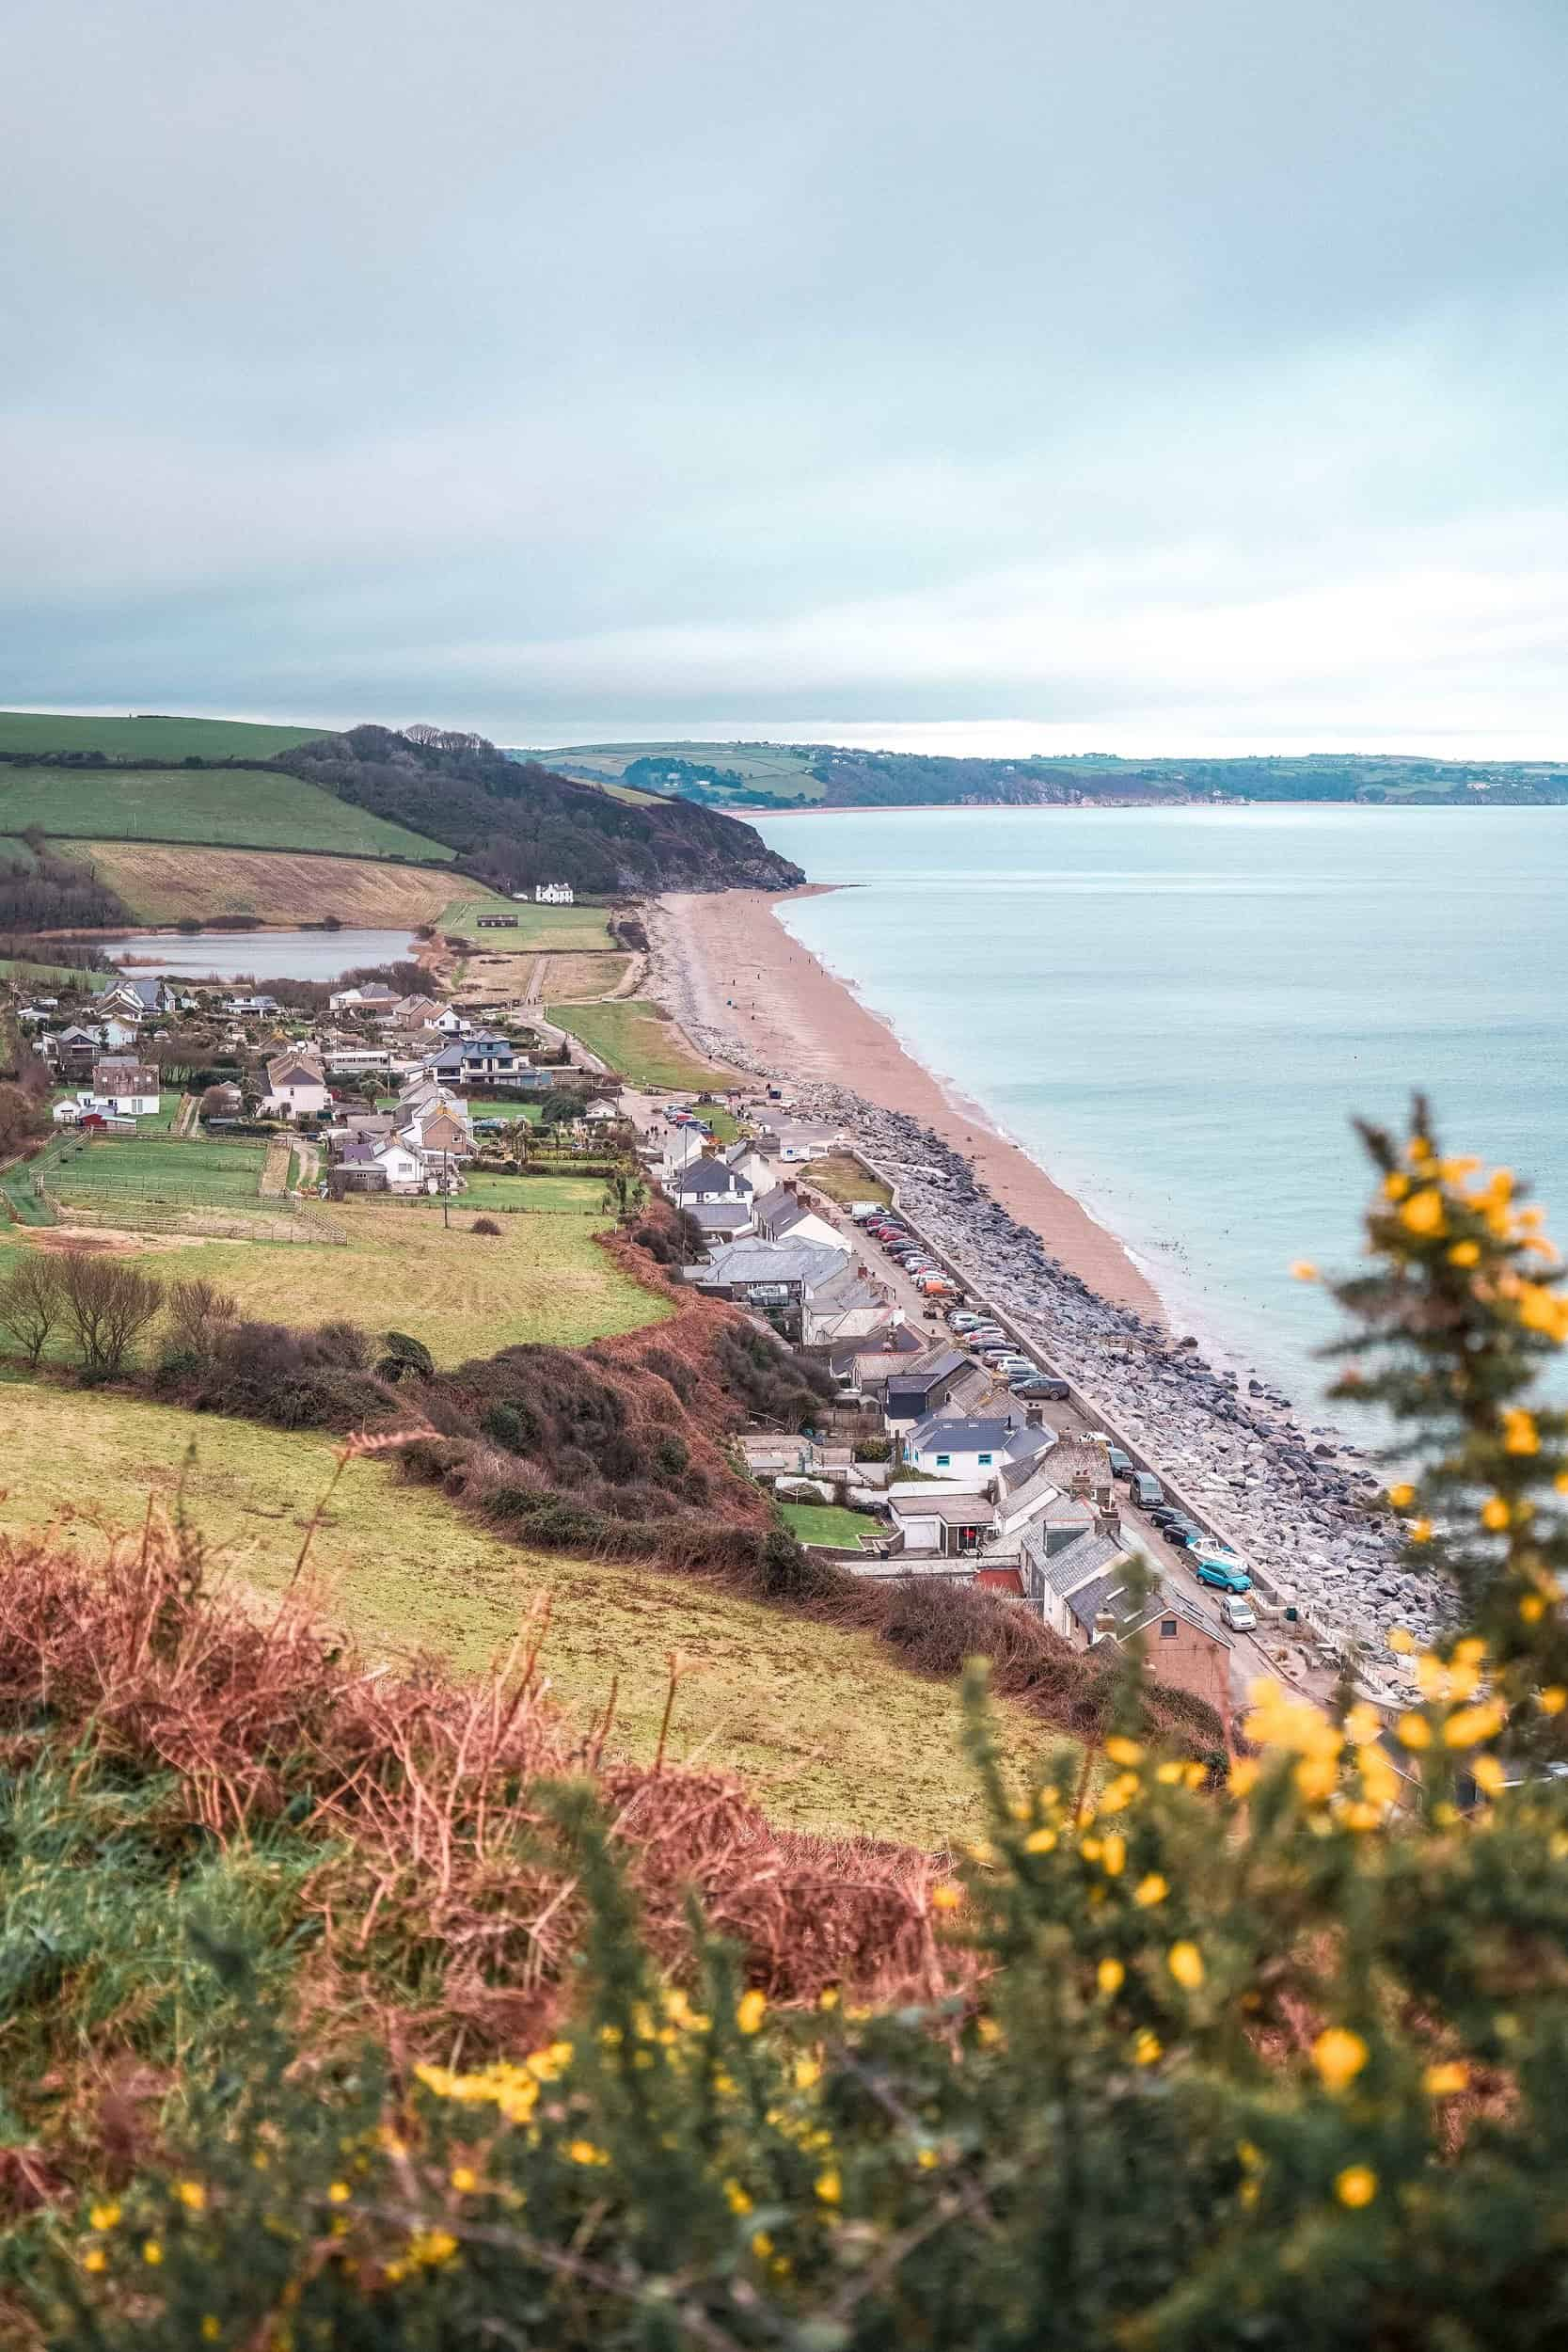 A guide to the best things to do in Beesands, a beautiful Devonian village in the South Hams, South Devon, South West England. Here's what to do, where to stay, and attractions in Beesands